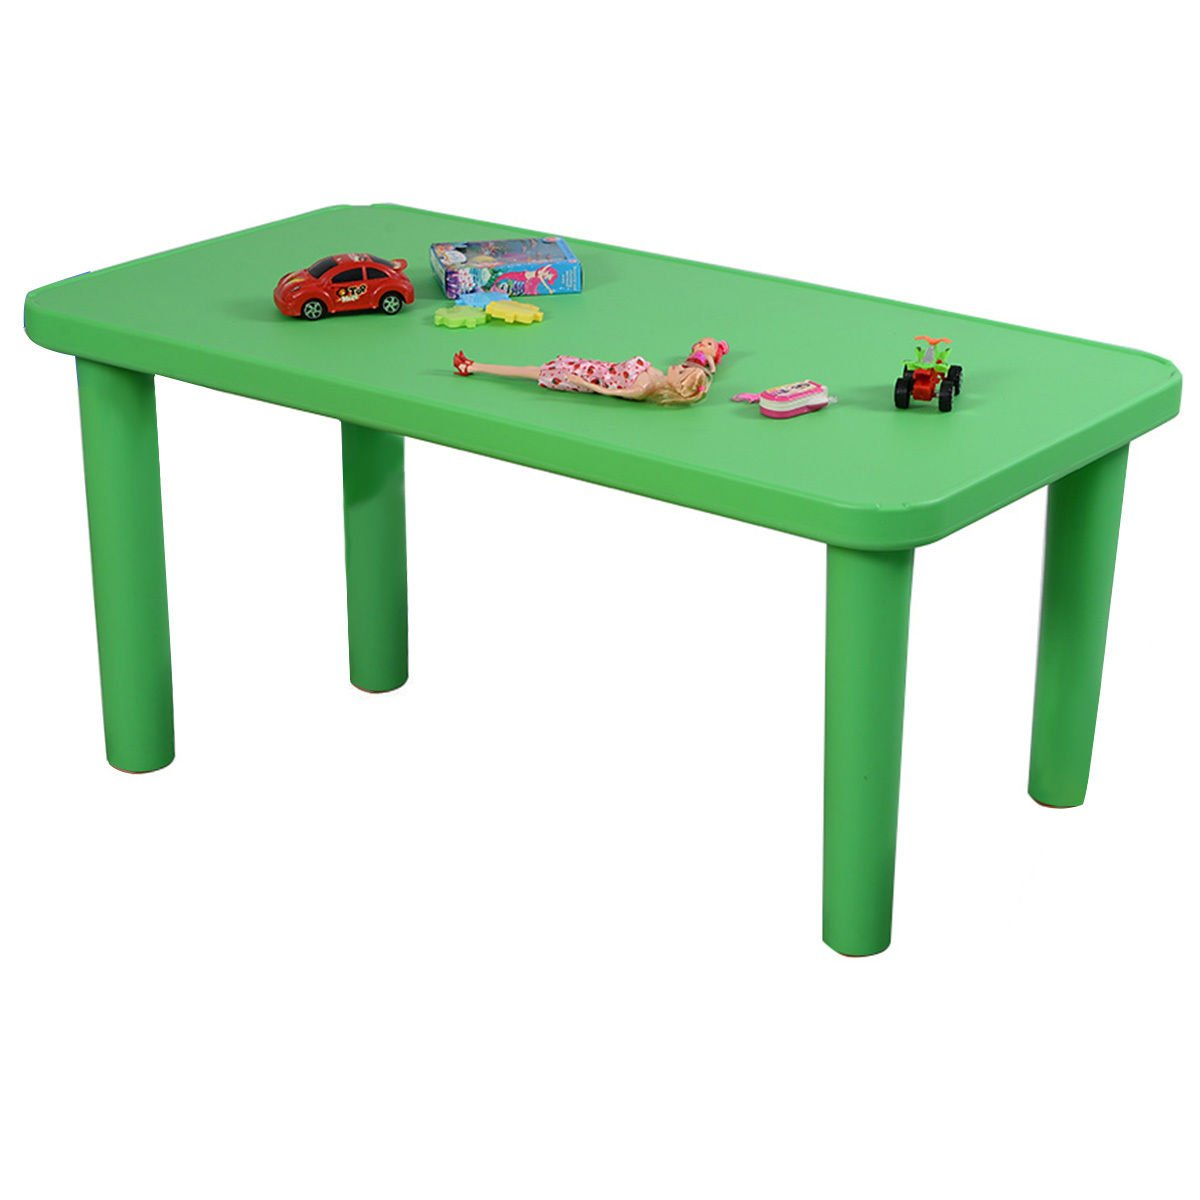 GHP 110Lbs Capacity 48''x24''x20'' Kids Green Rounded Corner Plastic Activity Table by Globe House Products